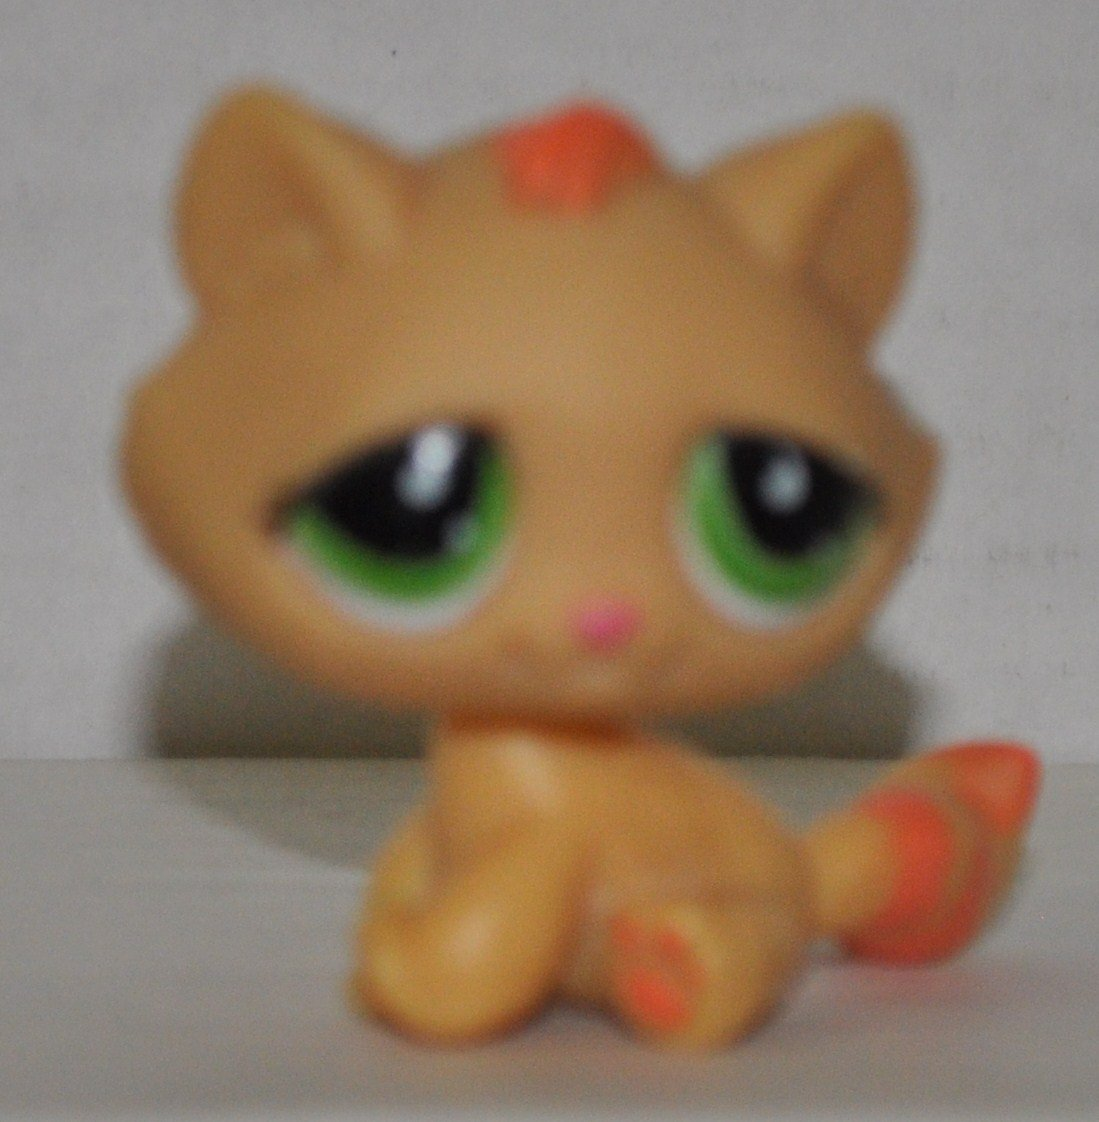 OOP Out of Package /& Print Retired LPS Collectible Replacement Figure Loose Orange, Green Eyes, Orange Stripes on Tail - Littlest Pet Shop Collector Toy Kitten #1207